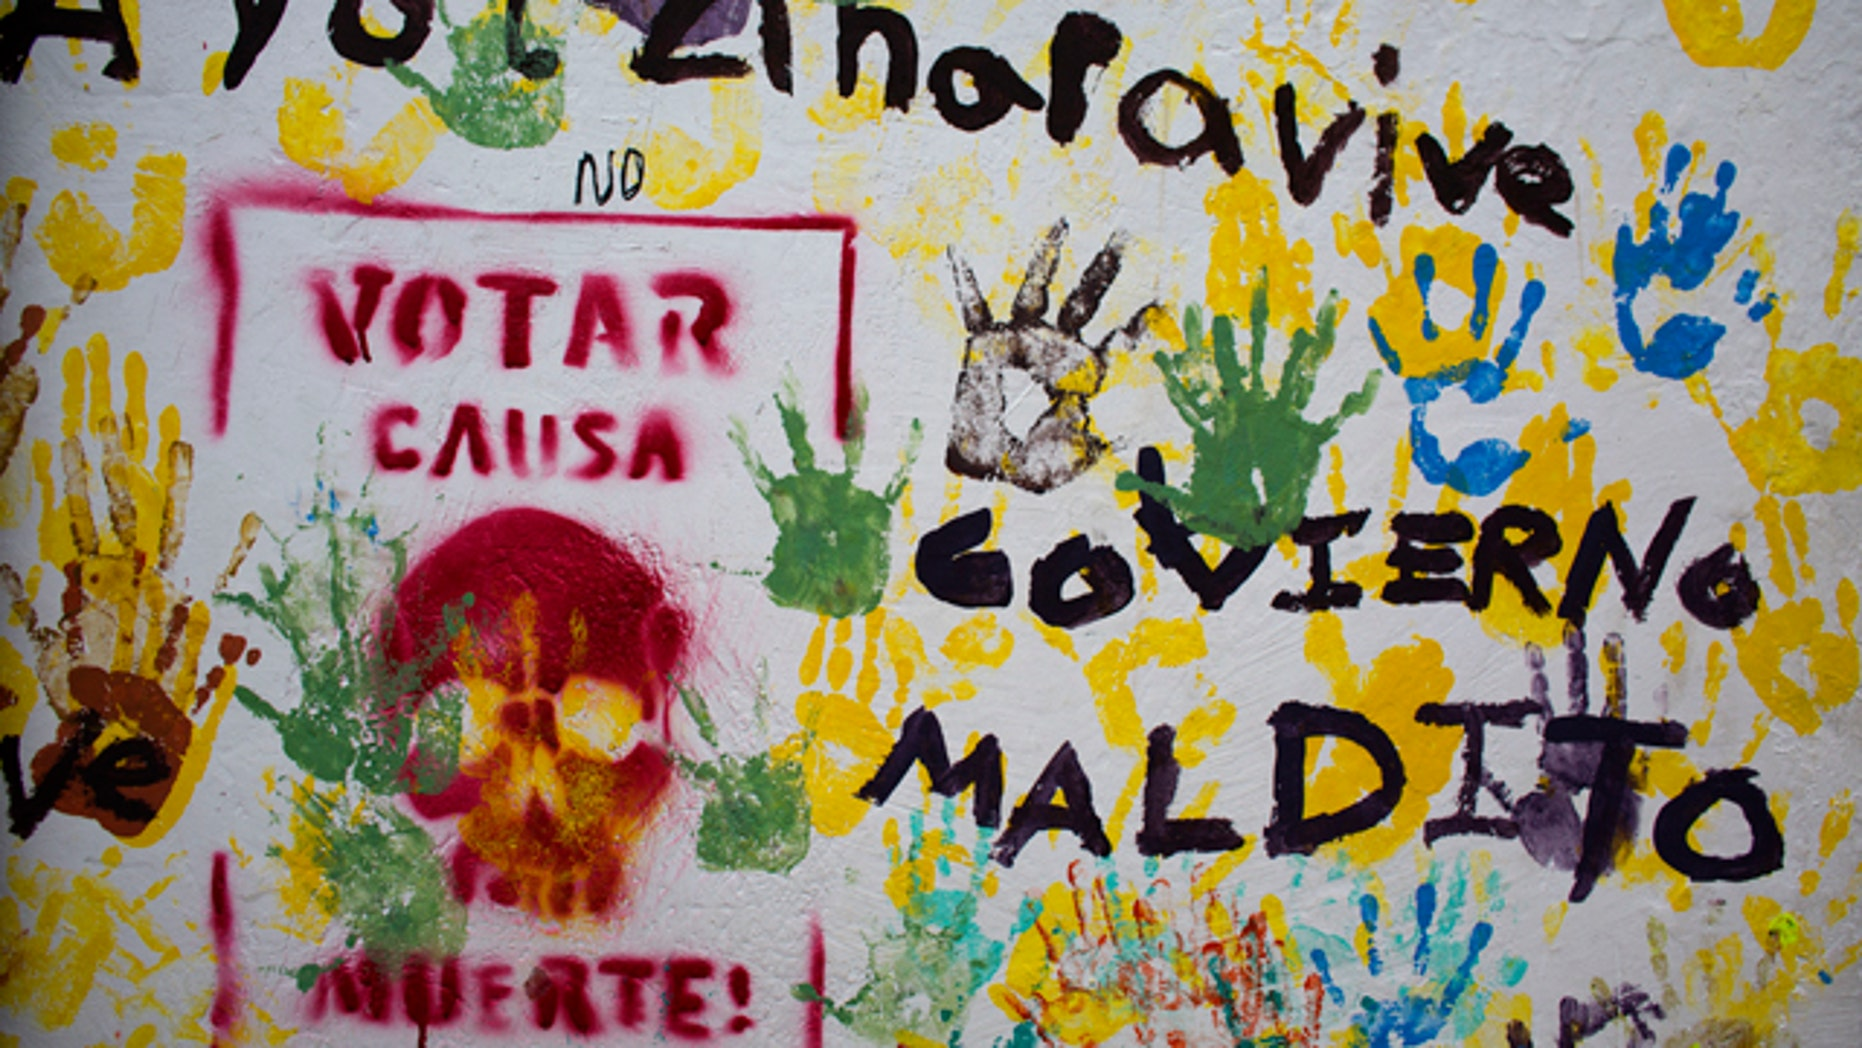 """Graffiti in the central square of Tixtla, home of the rural normal school at Ayotzinapa, reads """"Ayotzinapa lives. Voting causes death. Cursed government,"""" in Tixtla, Mexico, Saturday, June 6, 2015. A day ahead of elections, a community group, many with faces covered by bandanas, stopped all traffic entering and leaving the Guerrero state town of Tixtla along one main road, to search for and burn any campaign or election materials. (AP Photo/Rebecca Blackwell)"""